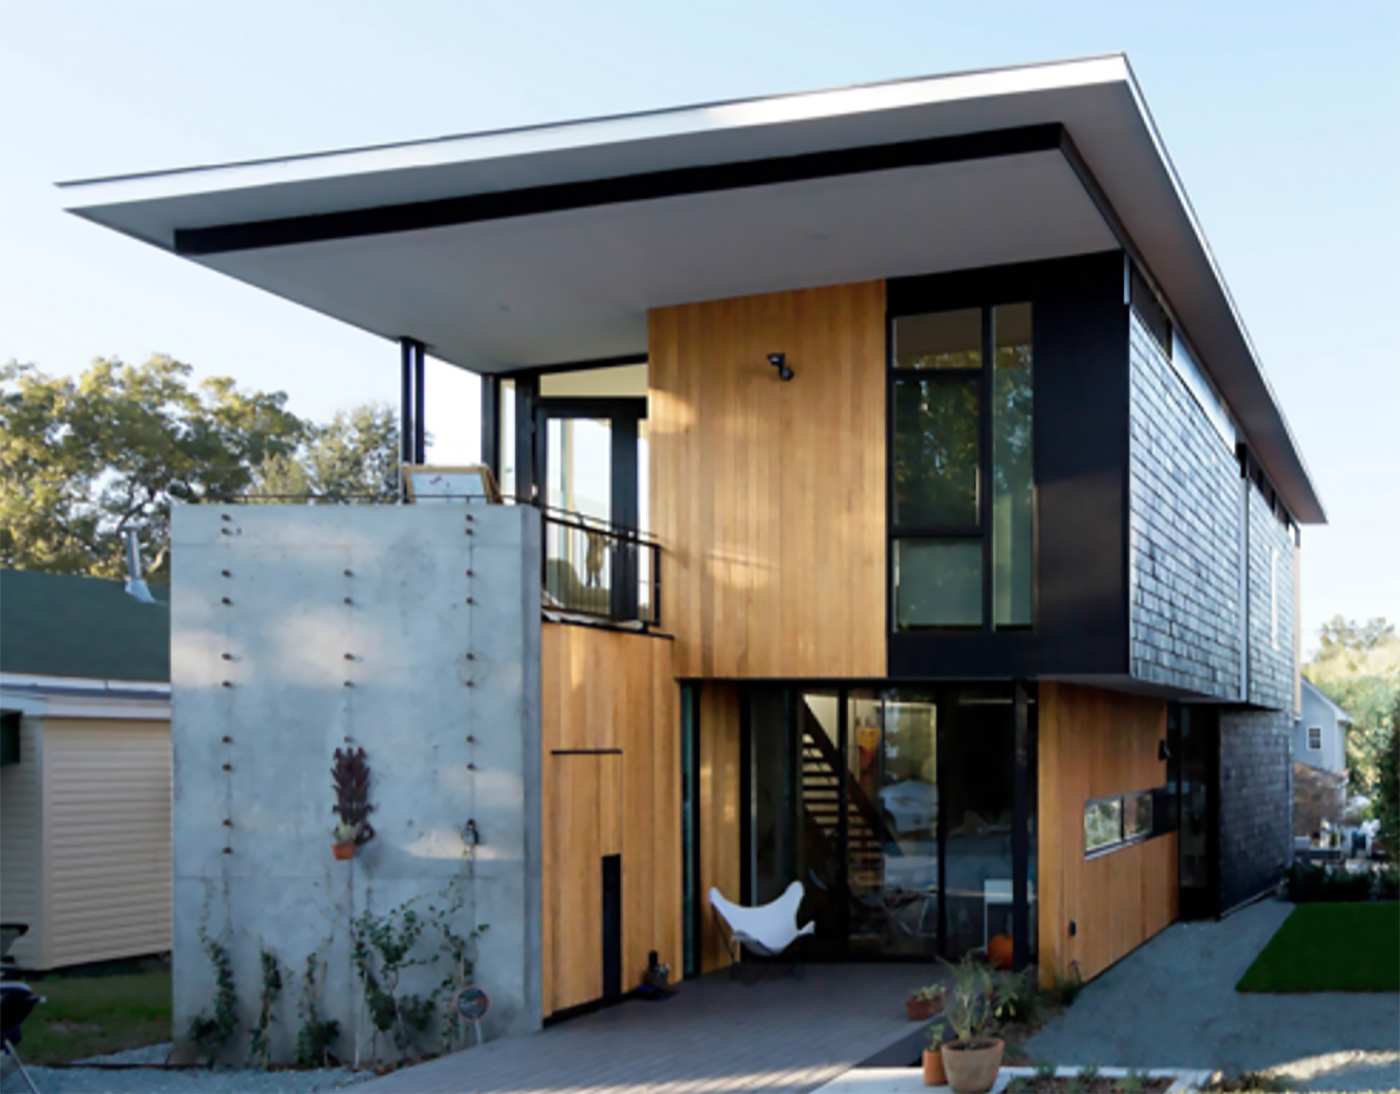 Two compact modern homes fill challenging empty lots in an old urban neighborhood